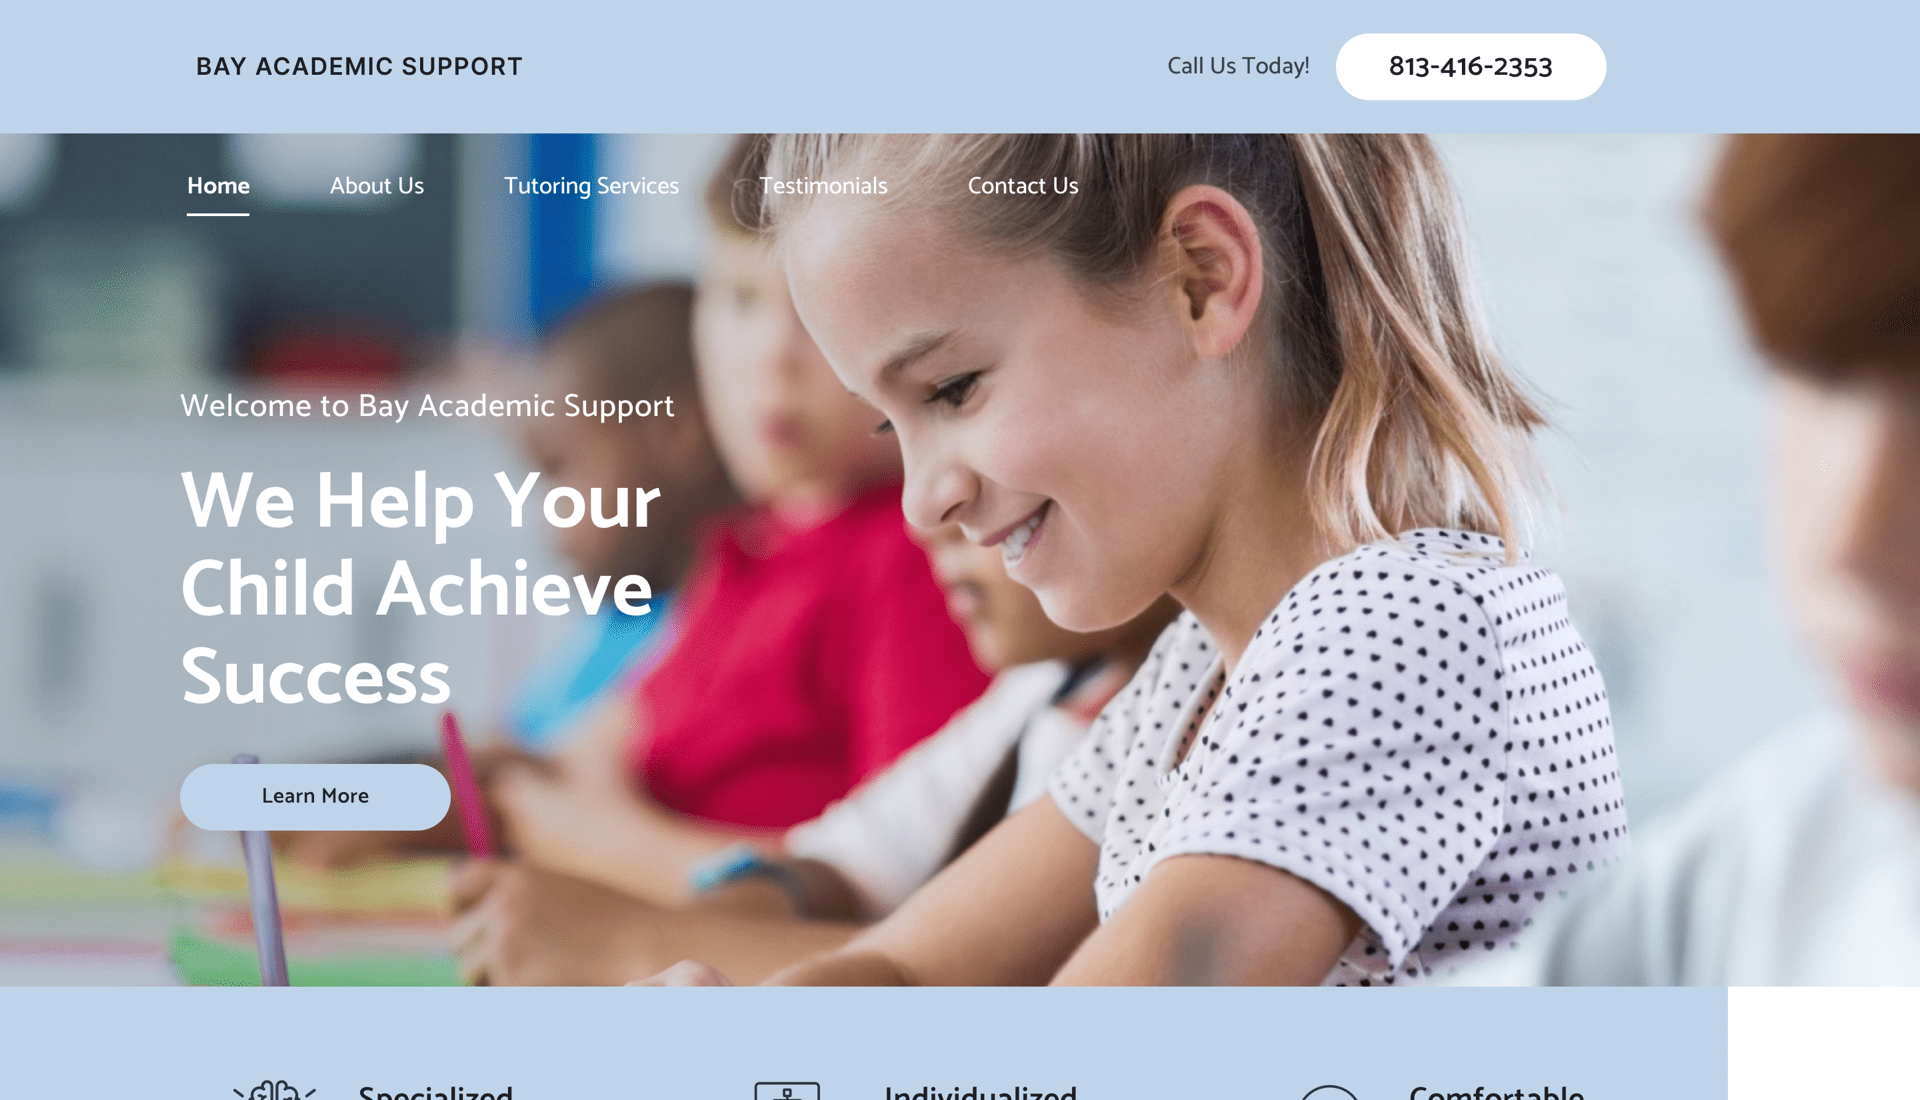 Bay Academic Support